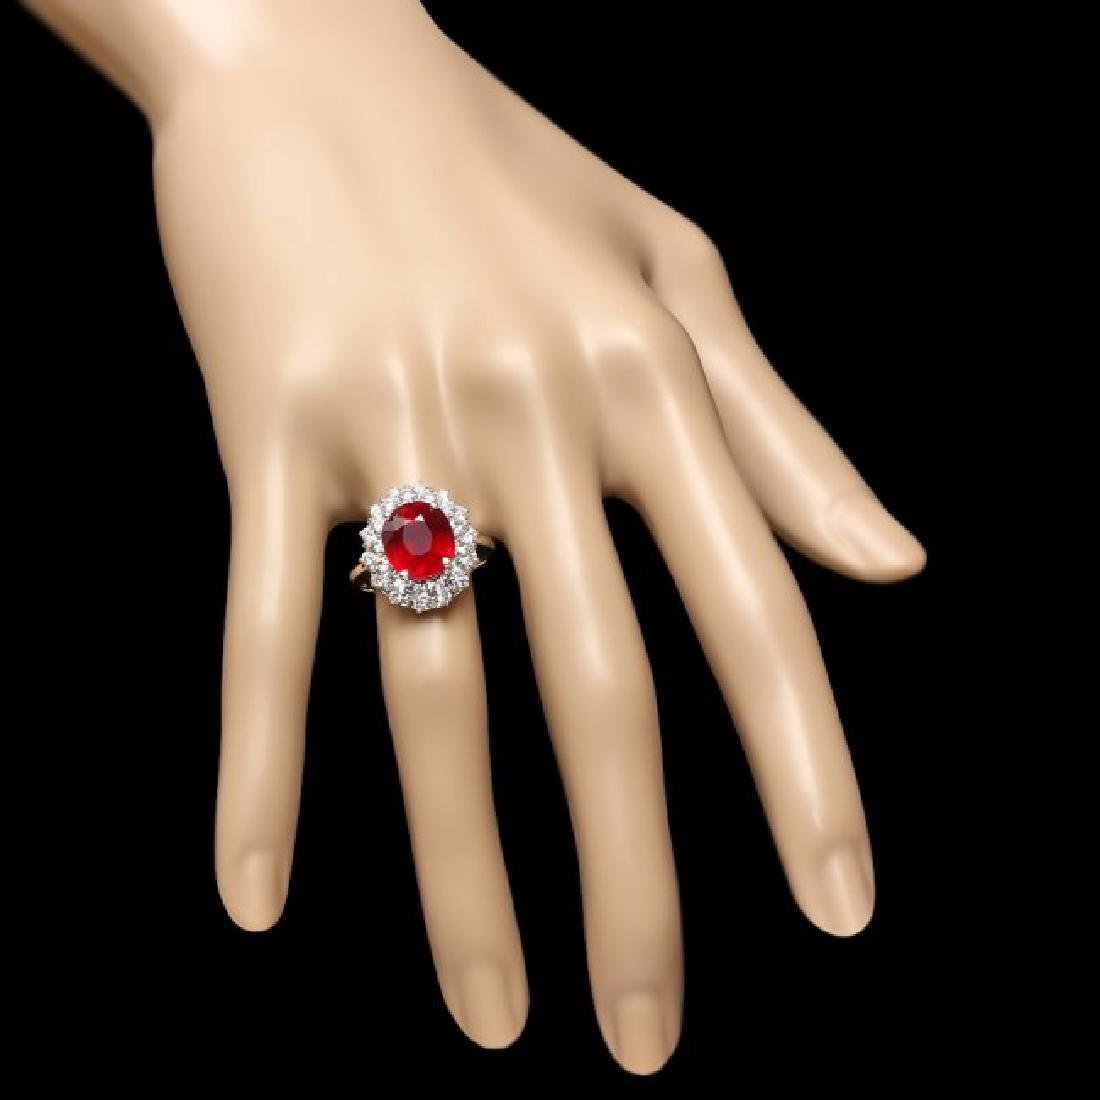 14k White Gold 6.50ct Ruby 1.50ct Diamond Ring - 4